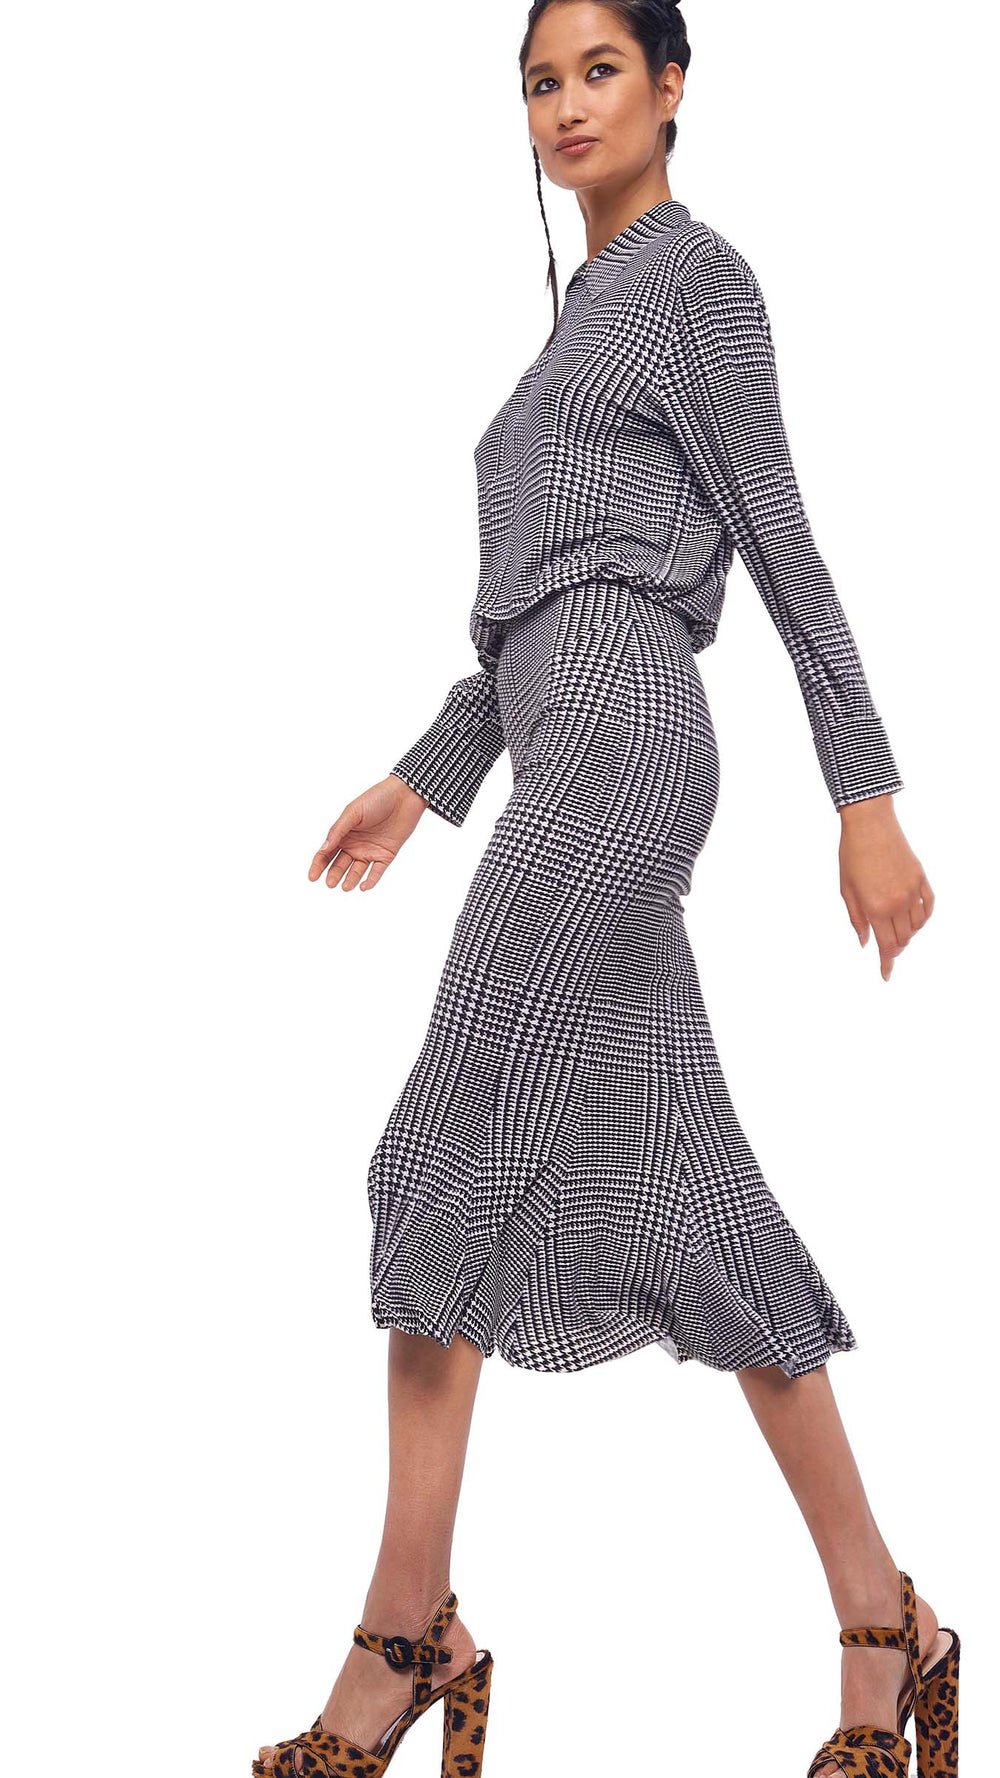 BF NK SHIRT FISHTAIL DRESS TO MIDCALF